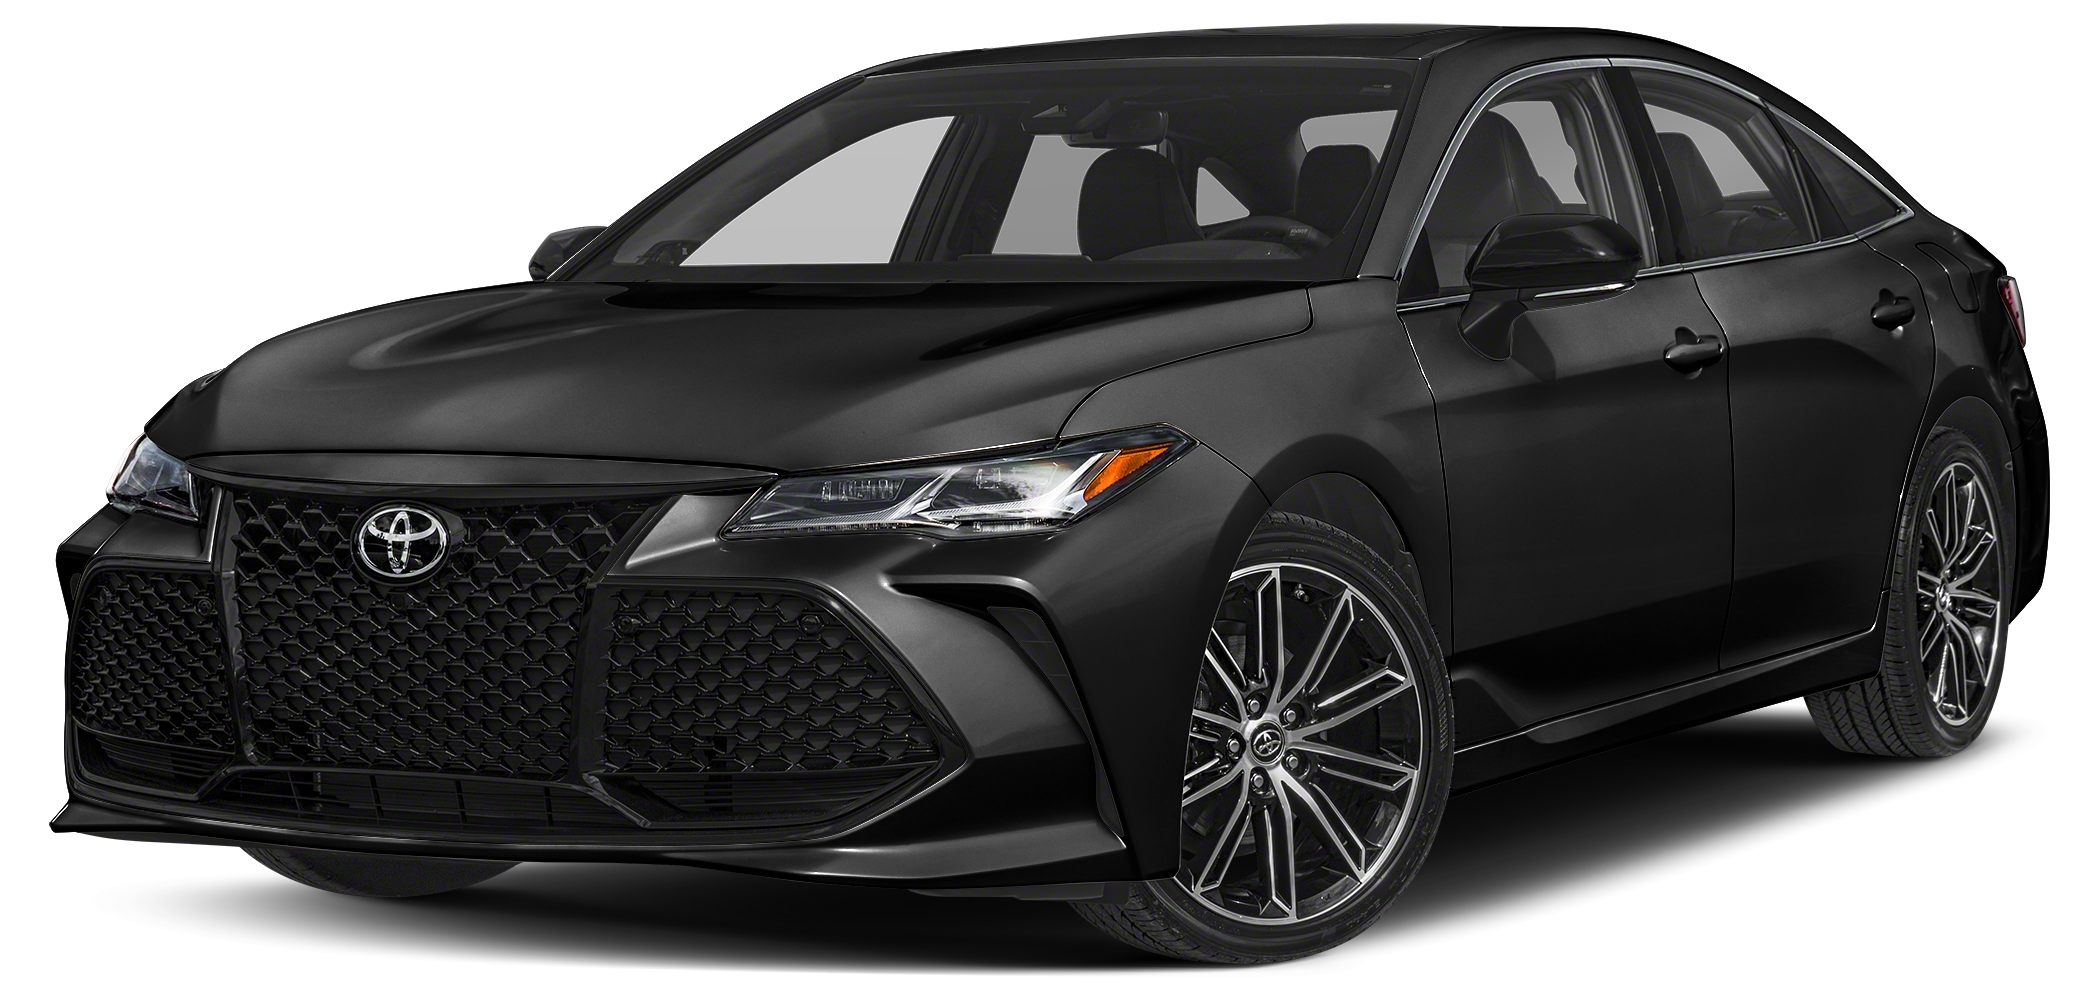 2019 Toyota Avalon XSE Harbor Gray Metallic XSE 8-Speed Automatic All Weather Floor Liners All W